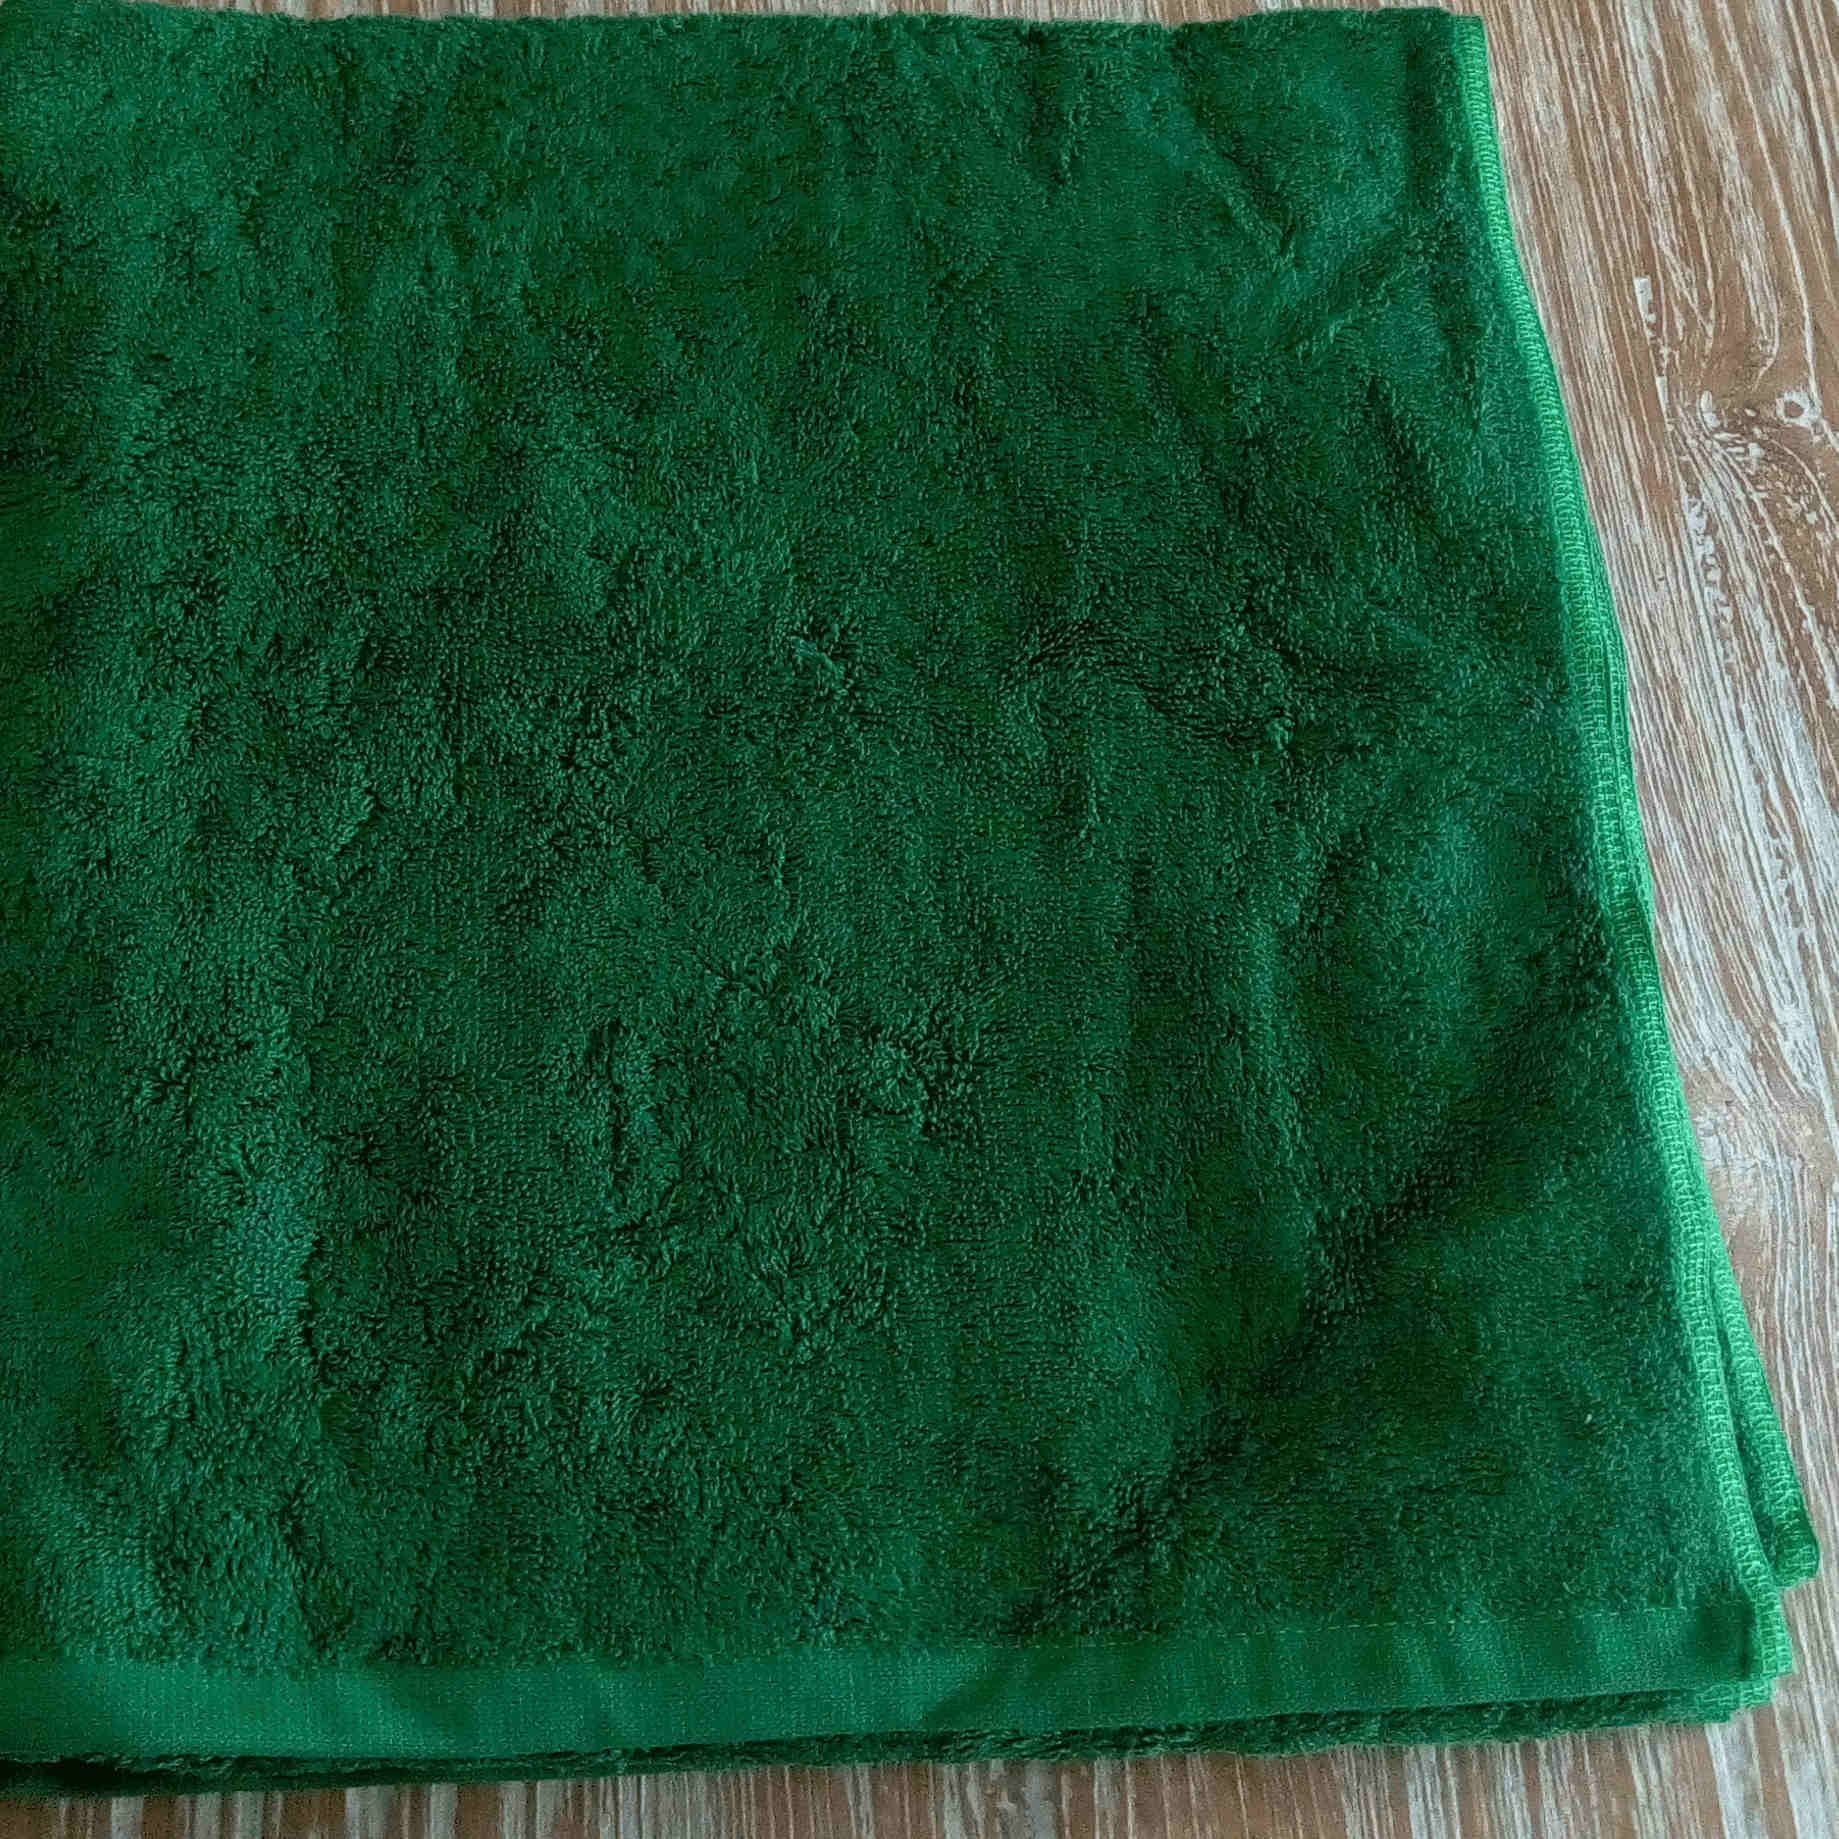 Bath Towel - Green - BaliOz